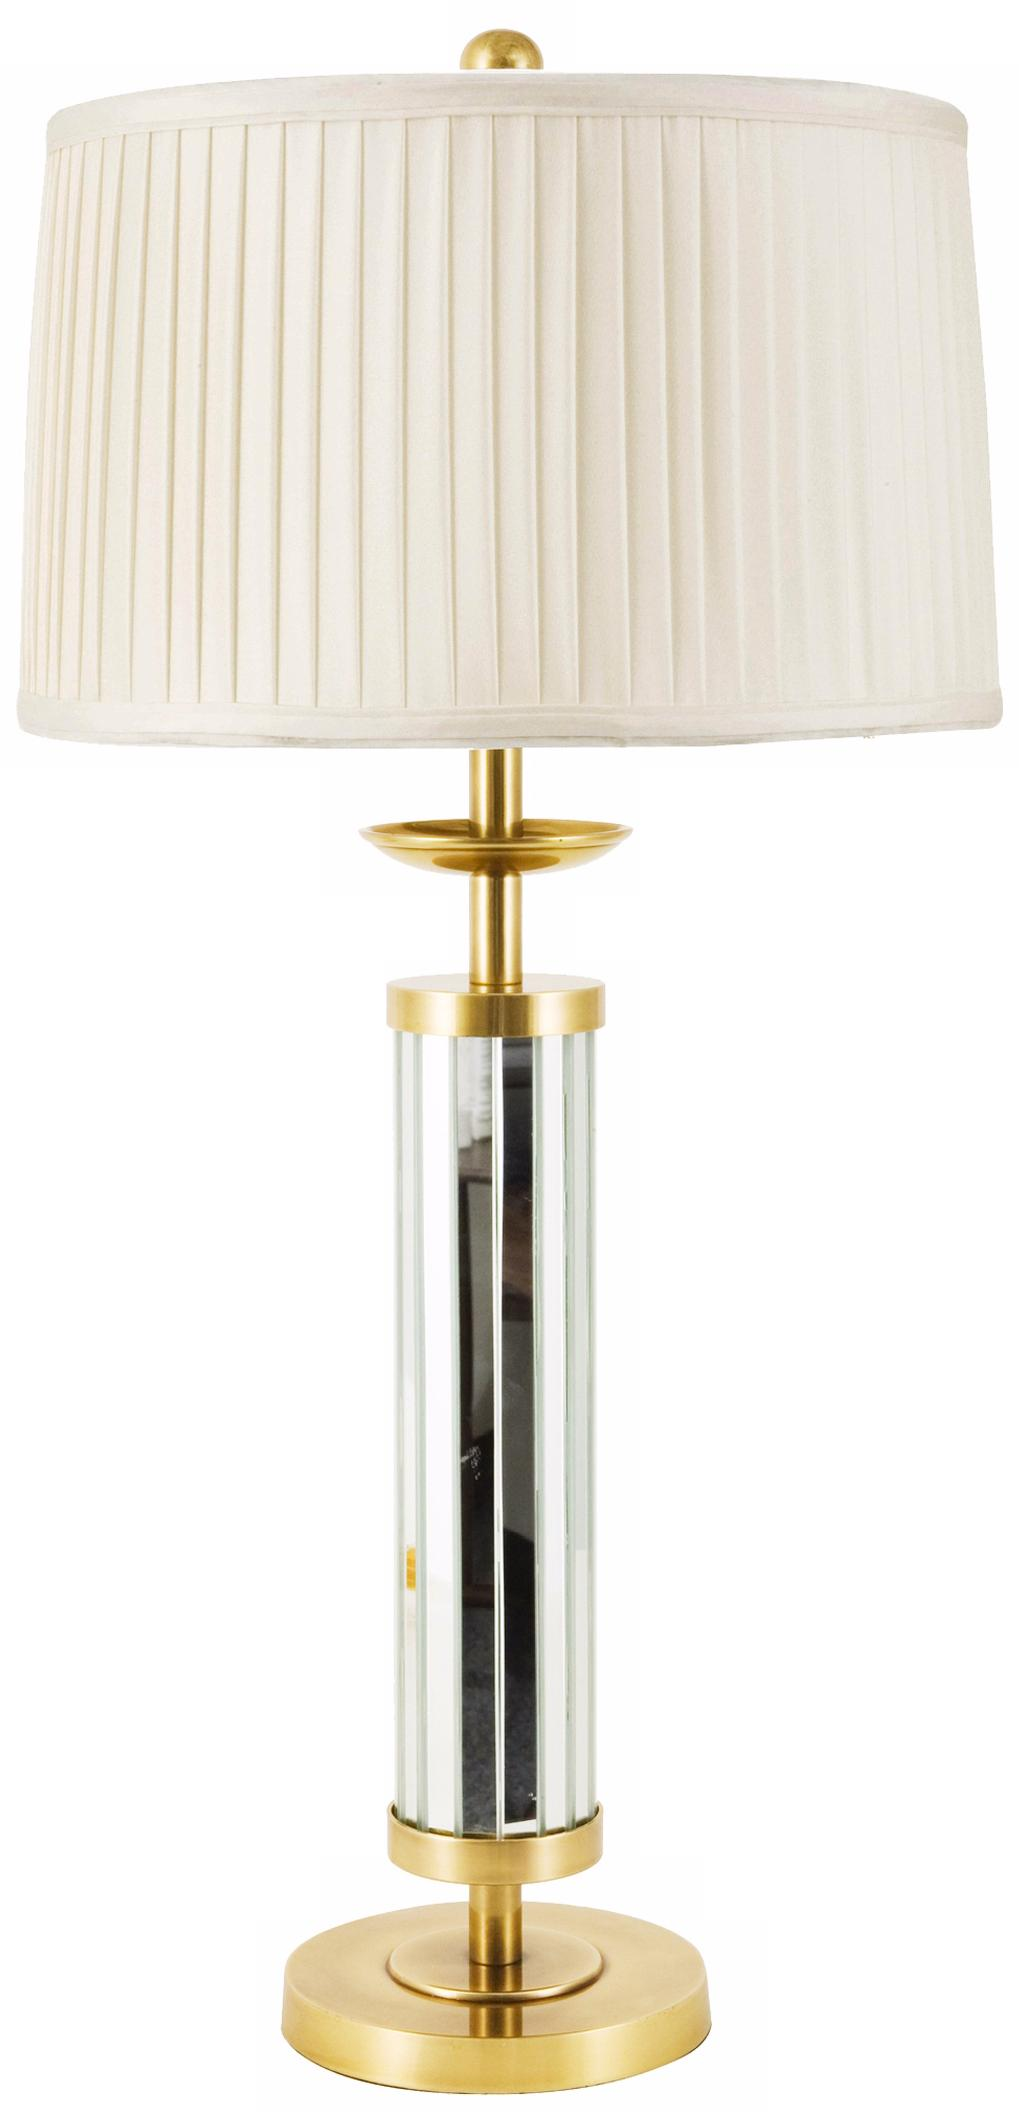 Frederick Cooper Athena's Column Table Lamp (N9044)